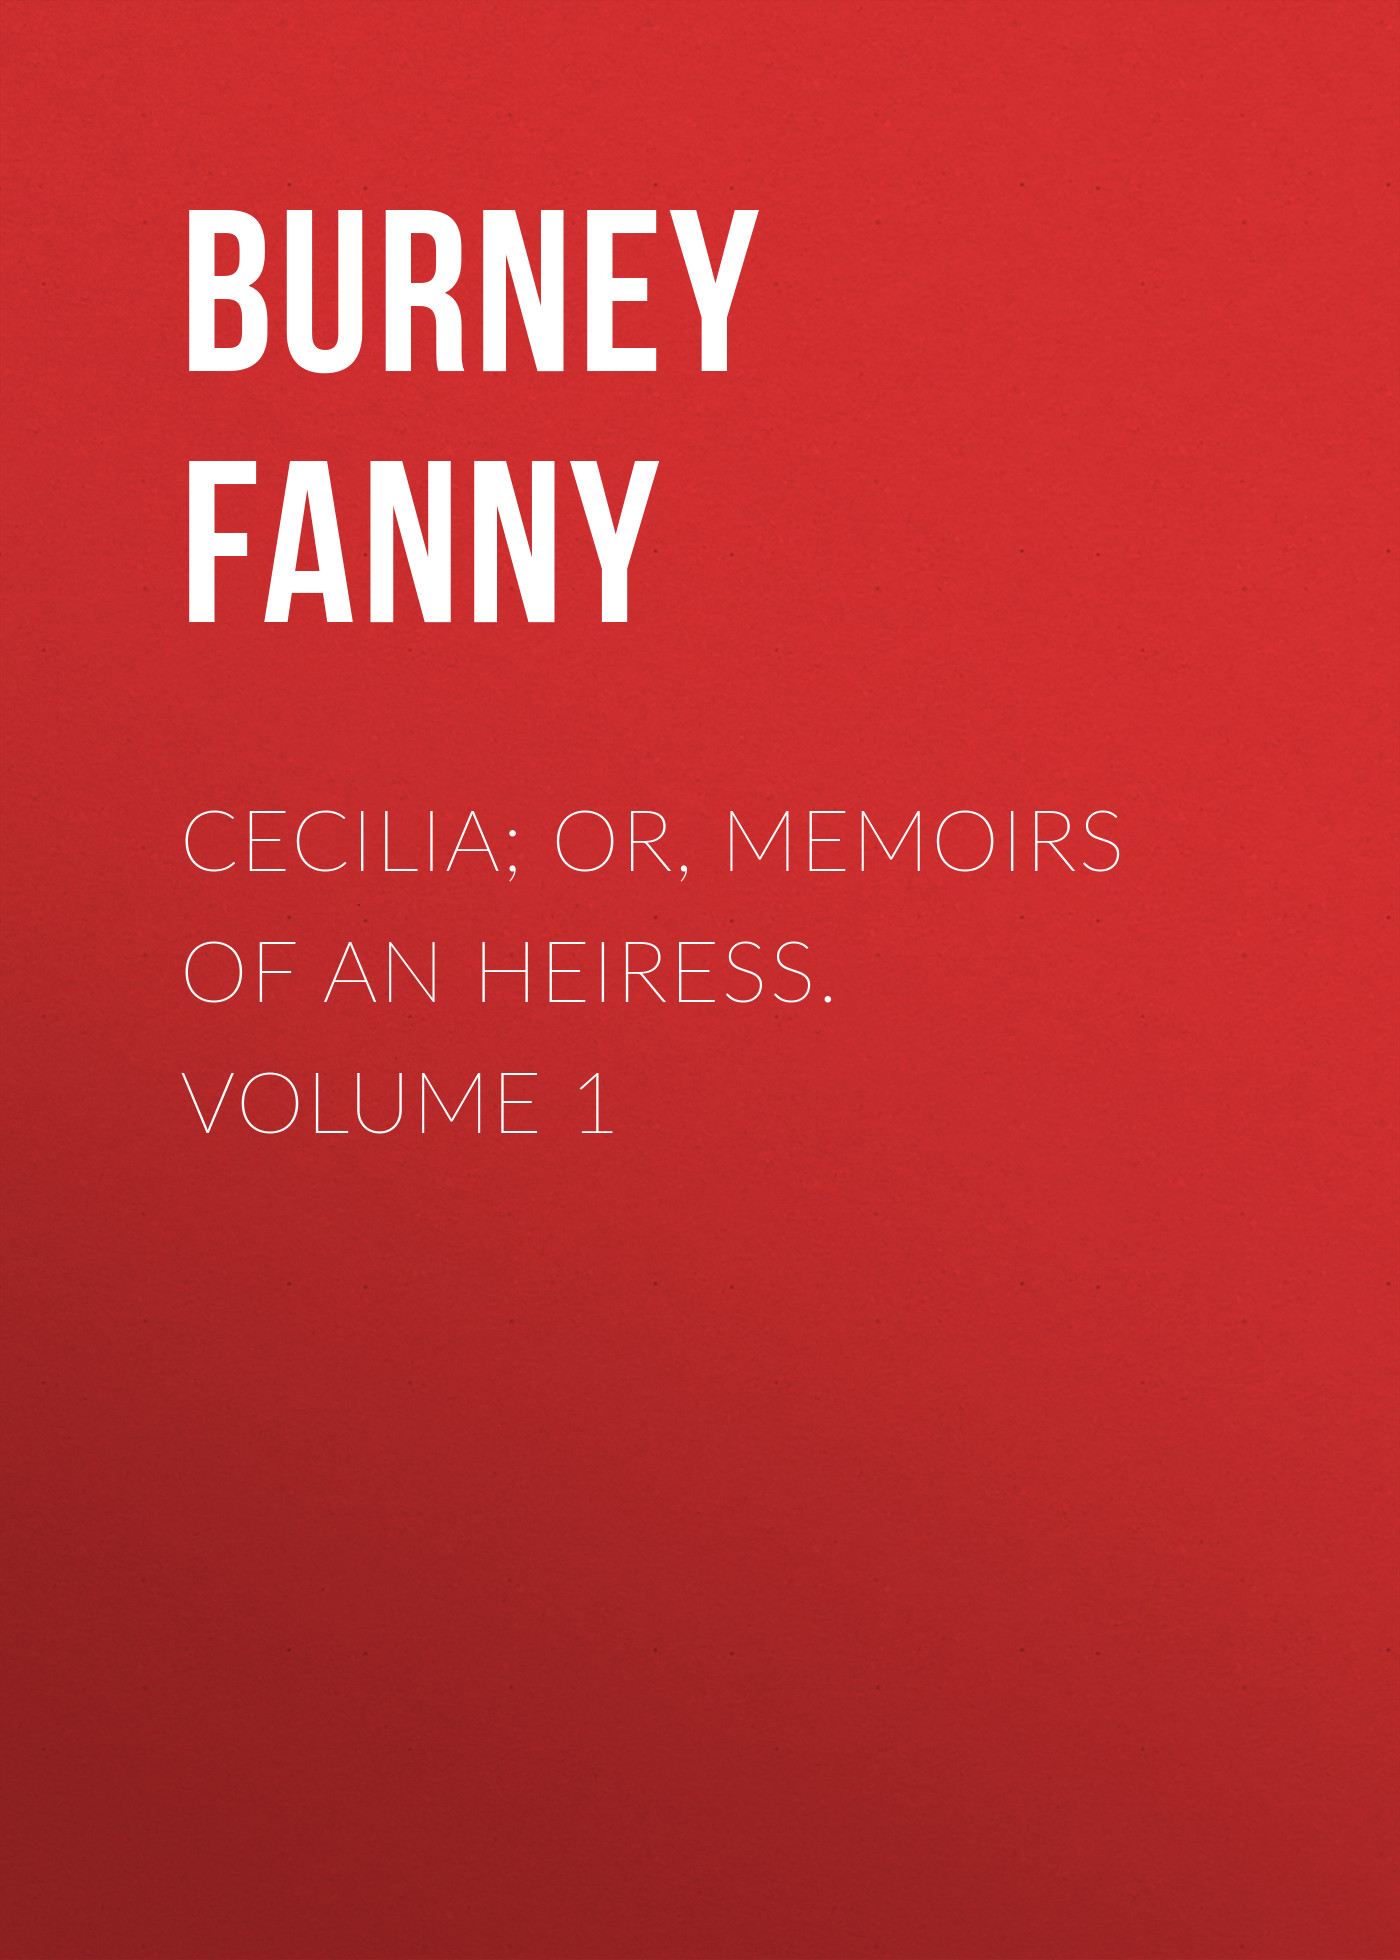 Burney Fanny Cecilia; Or, Memoirs of an Heiress. Volume 1 burney fanny the wanderer or female difficulties volume 5 of 5